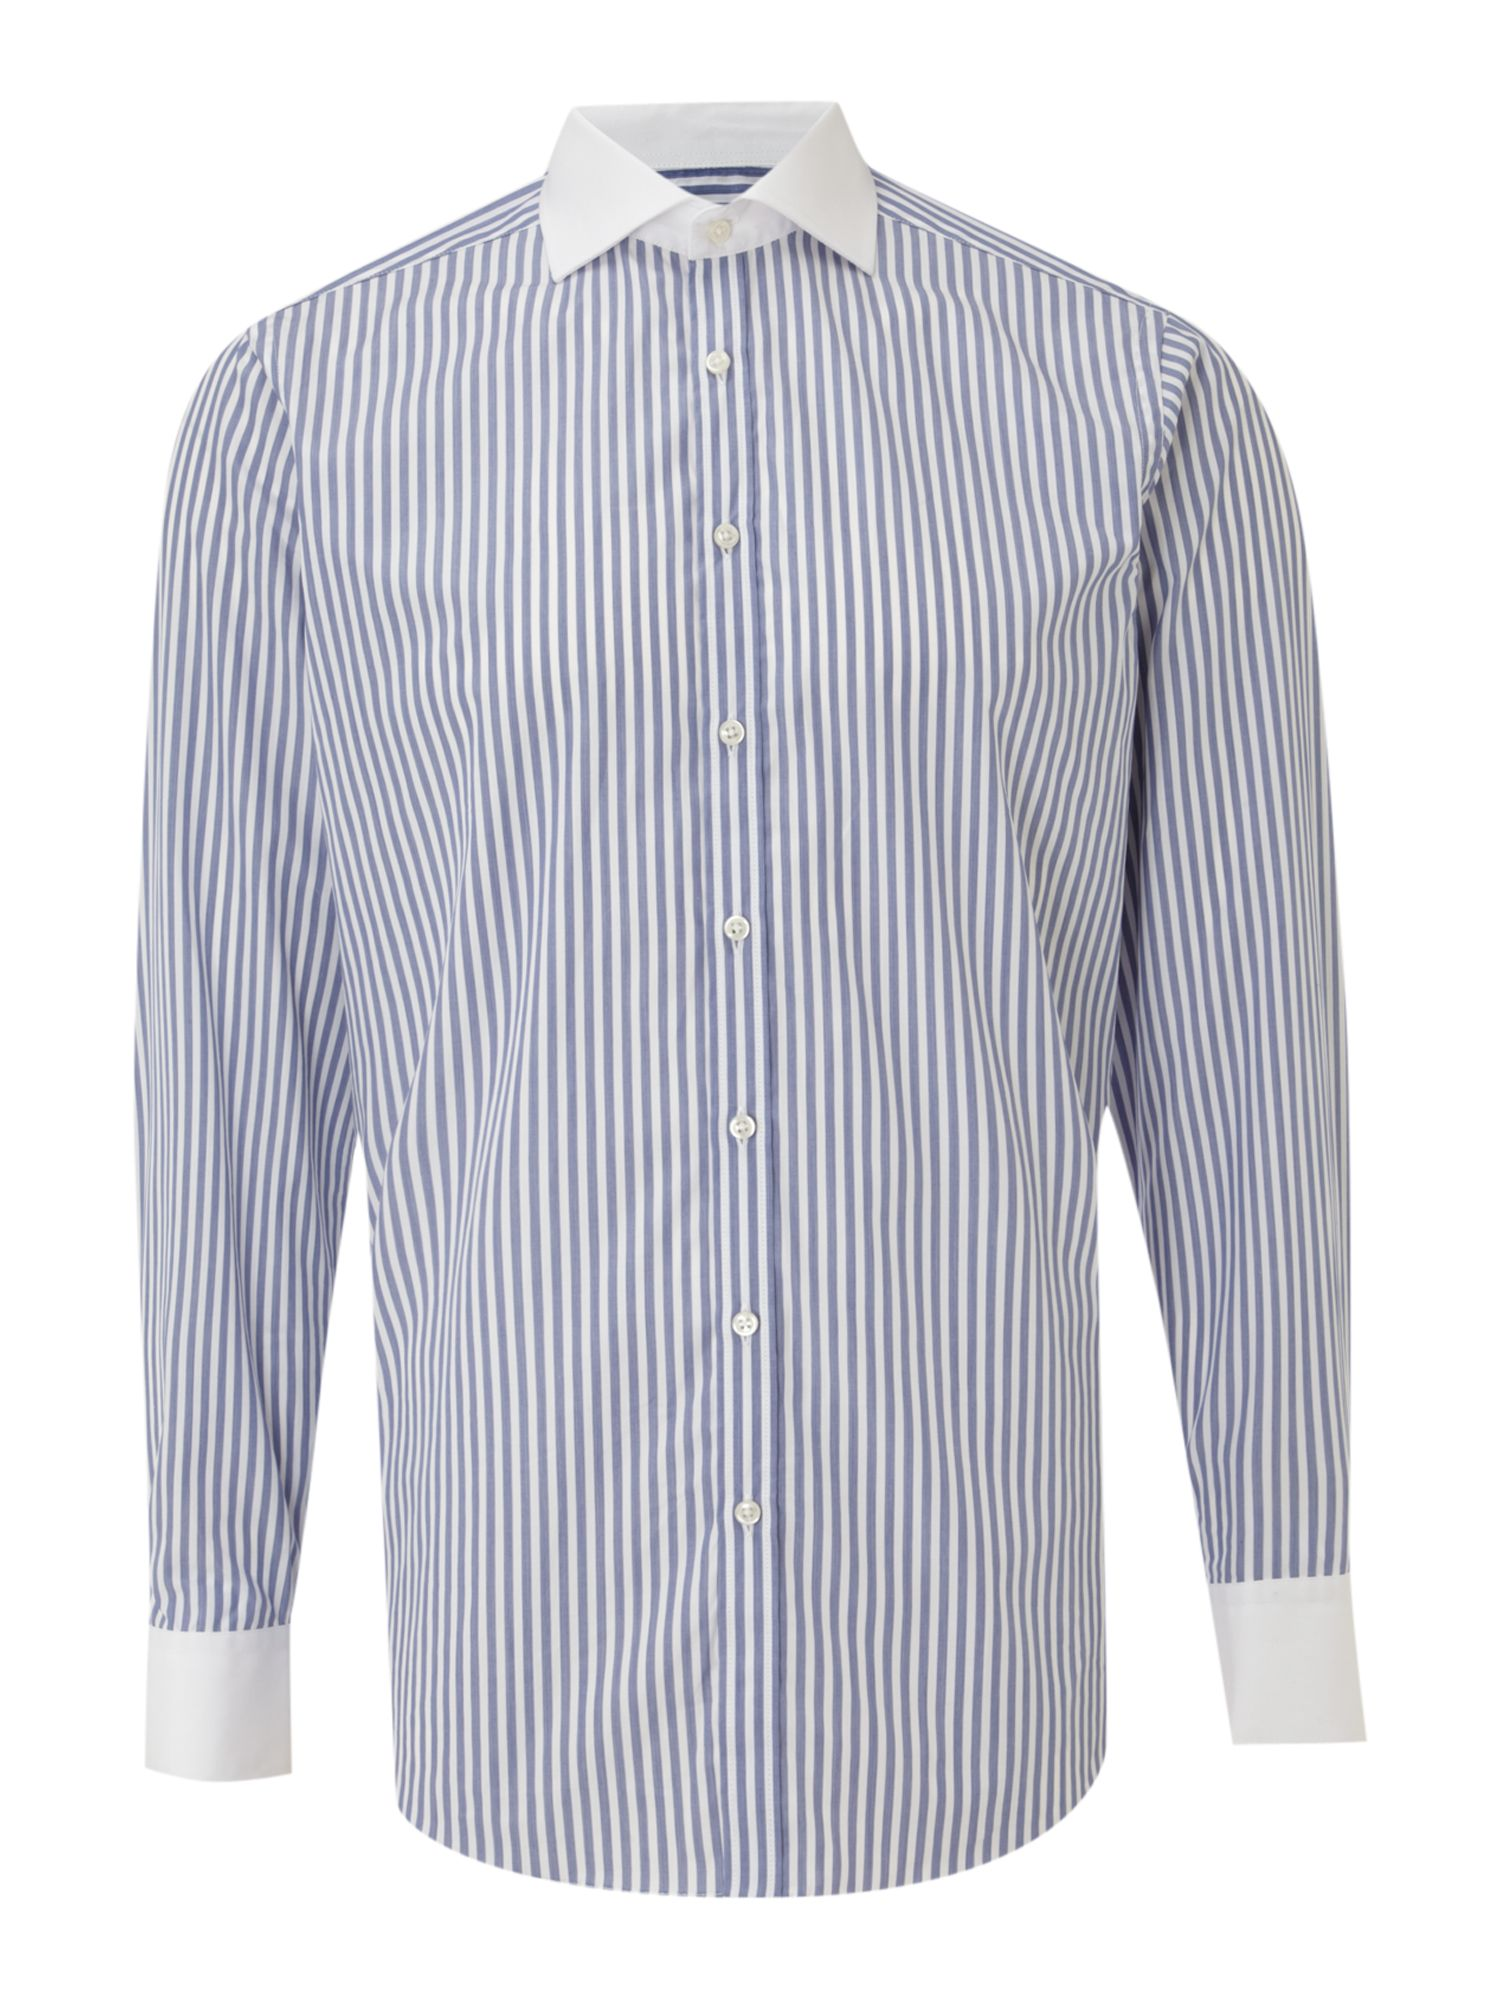 Long-sleeve white collar fade stripe formal shirt